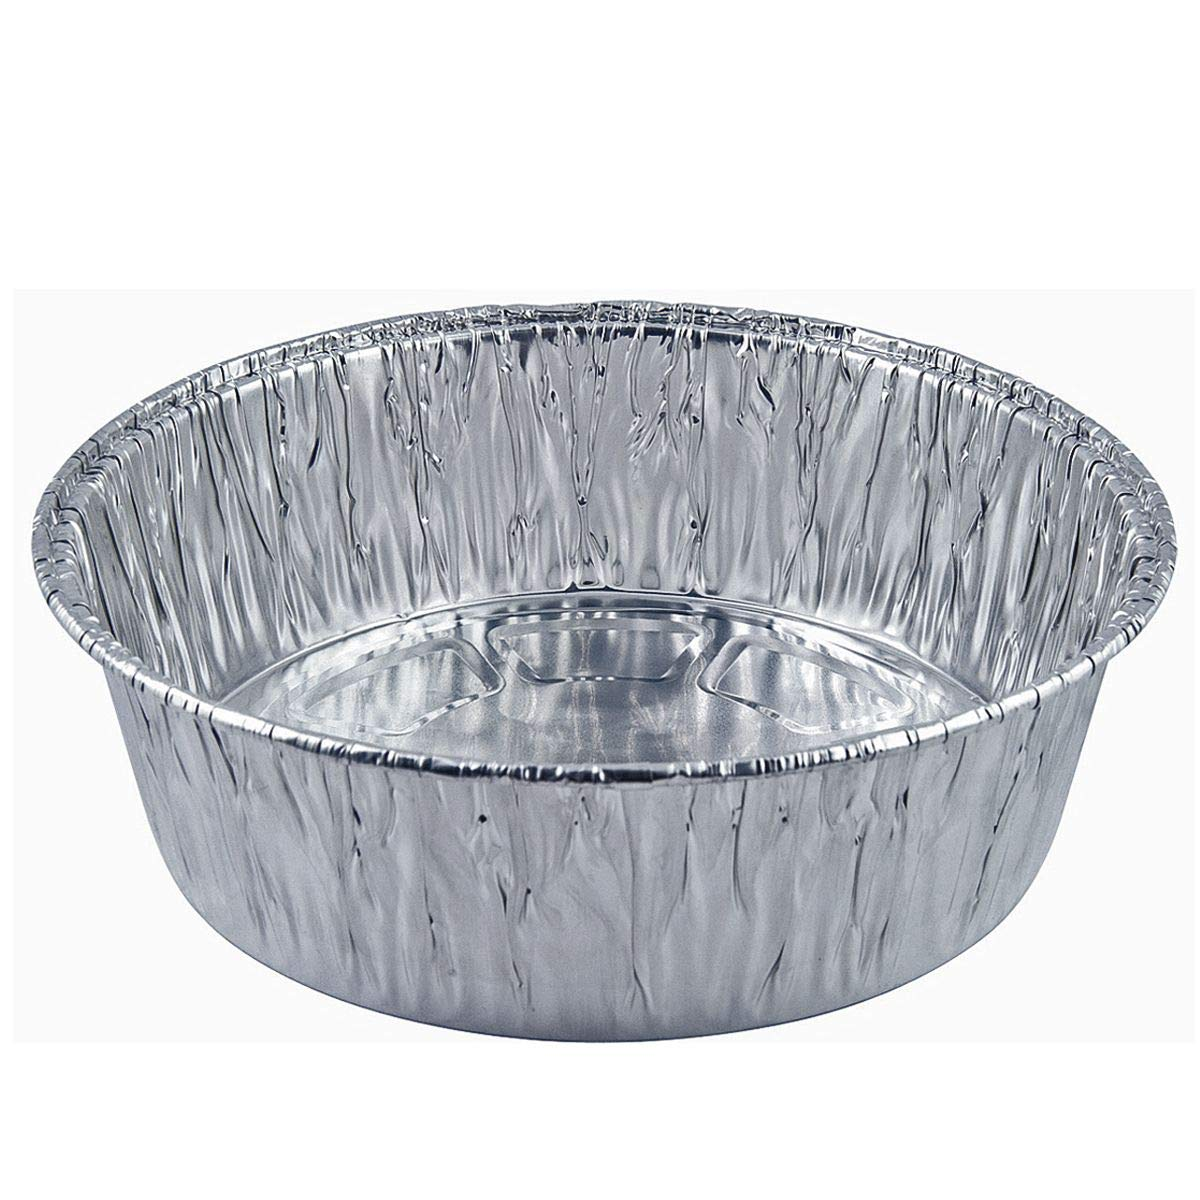 Disposable Round Baking Aluminum Pans - 10-inch Round Extra Deep Round Casserole Cake Pan (100 Count)